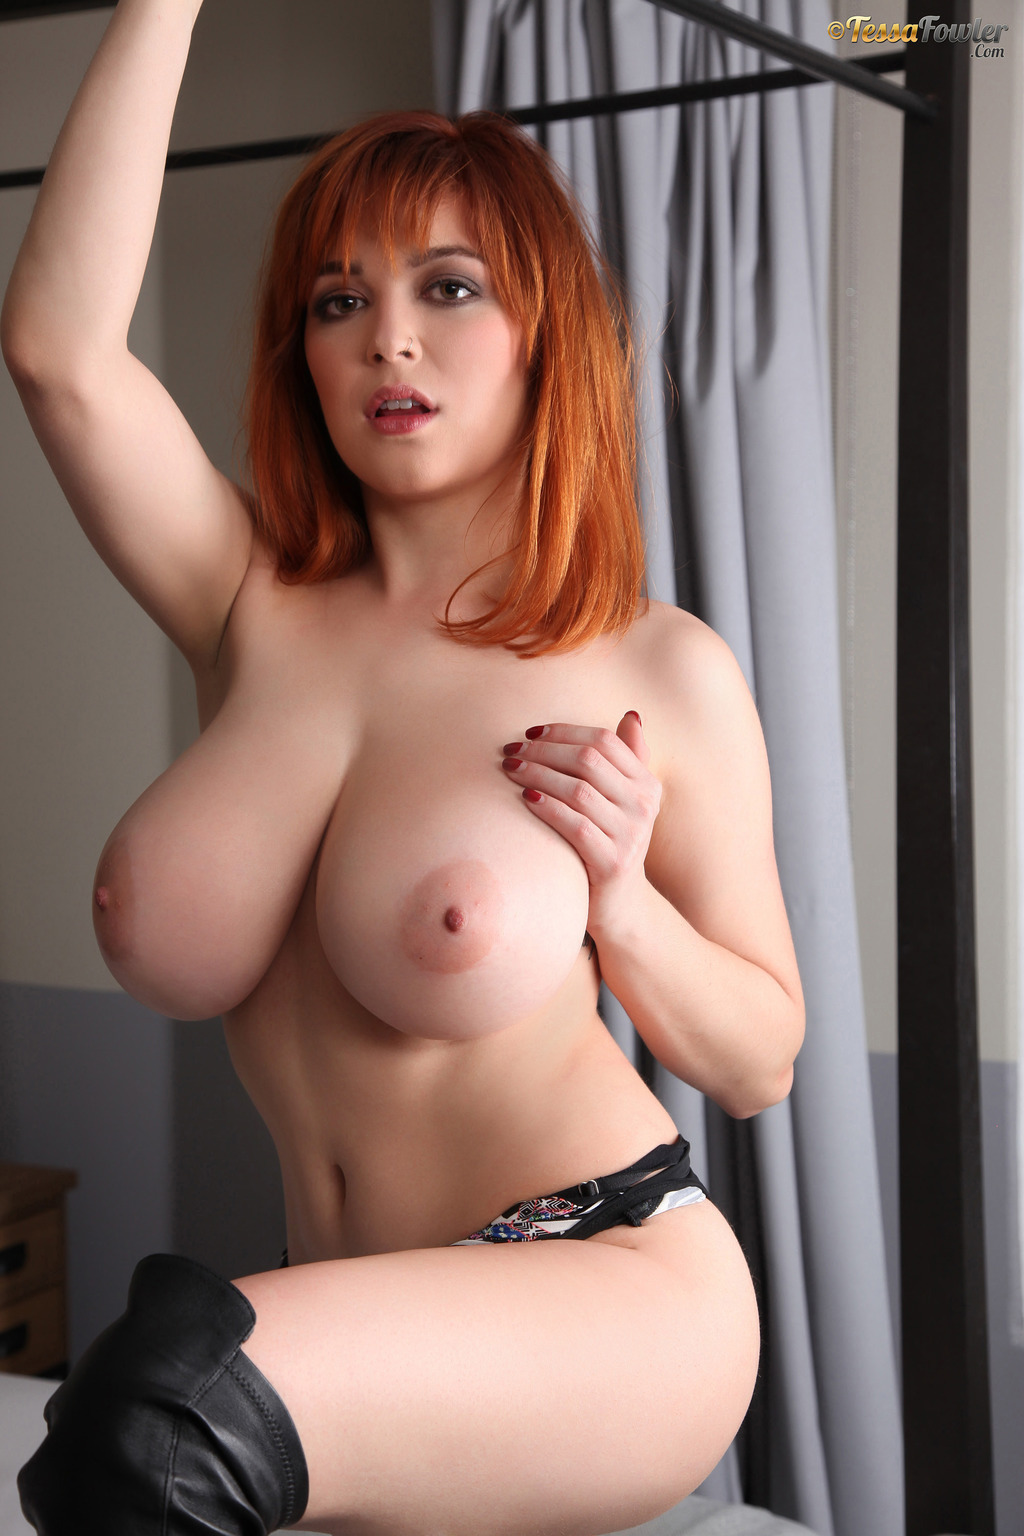 Free busty redhead pictures and movies, amateur bbc wife tubes